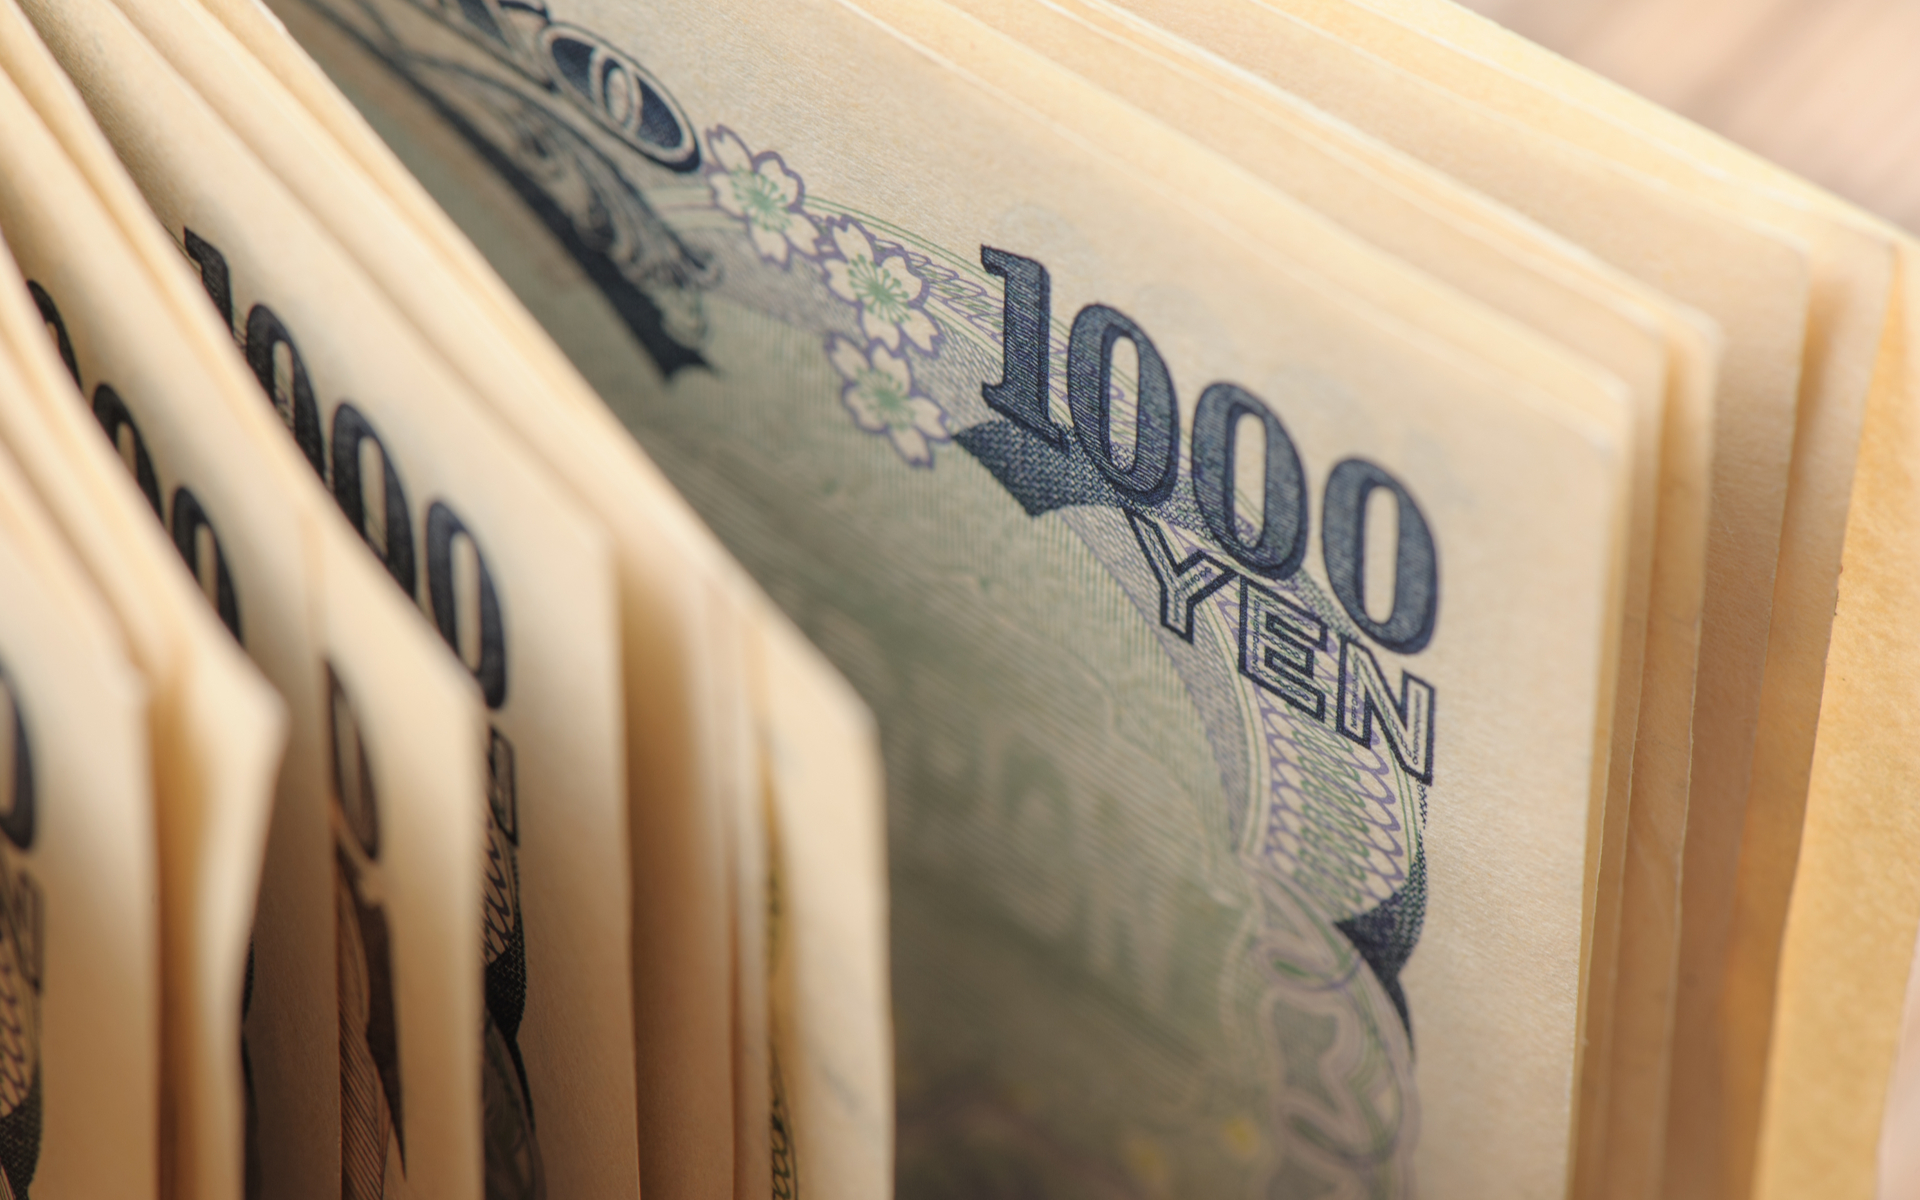 IMM Report: JPY Shorts Surge To Highest Level Since Dec